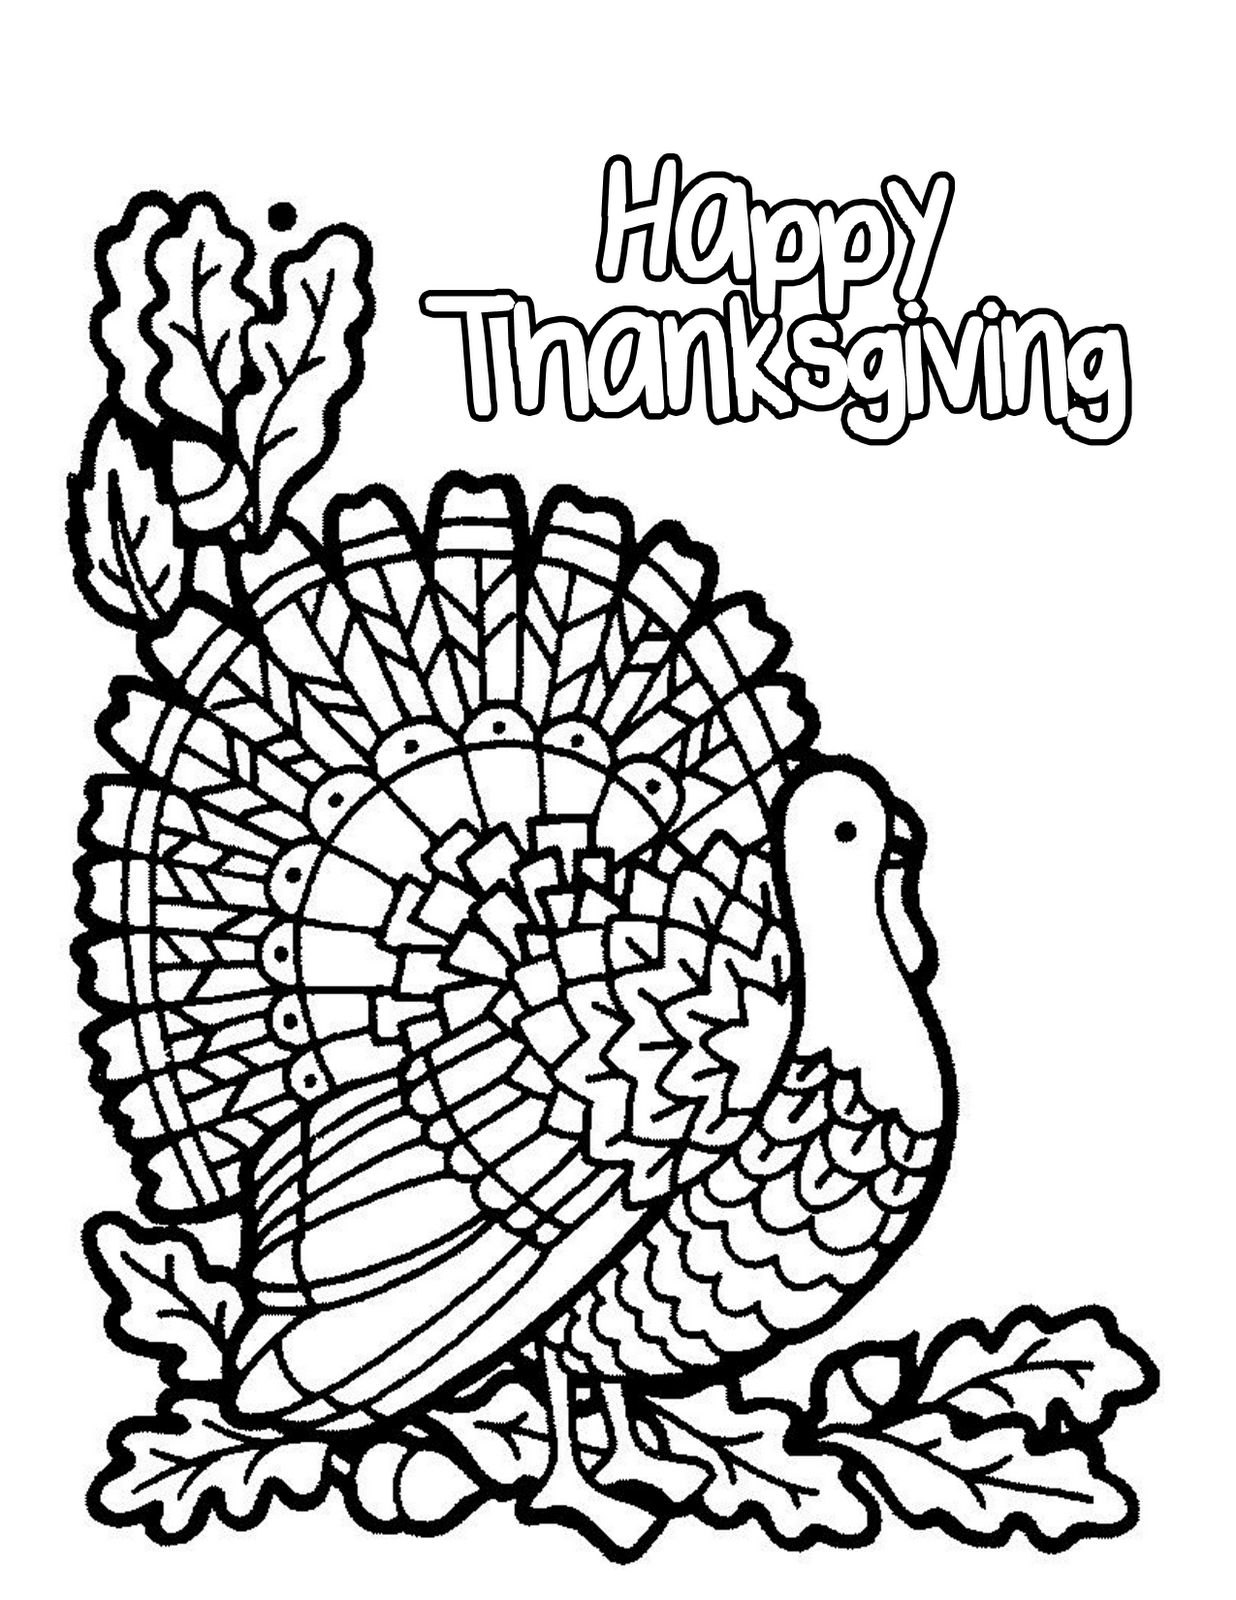 1236x1600 Turkey Happy Thanksgiving Coloring Pages Children Thanksgiving